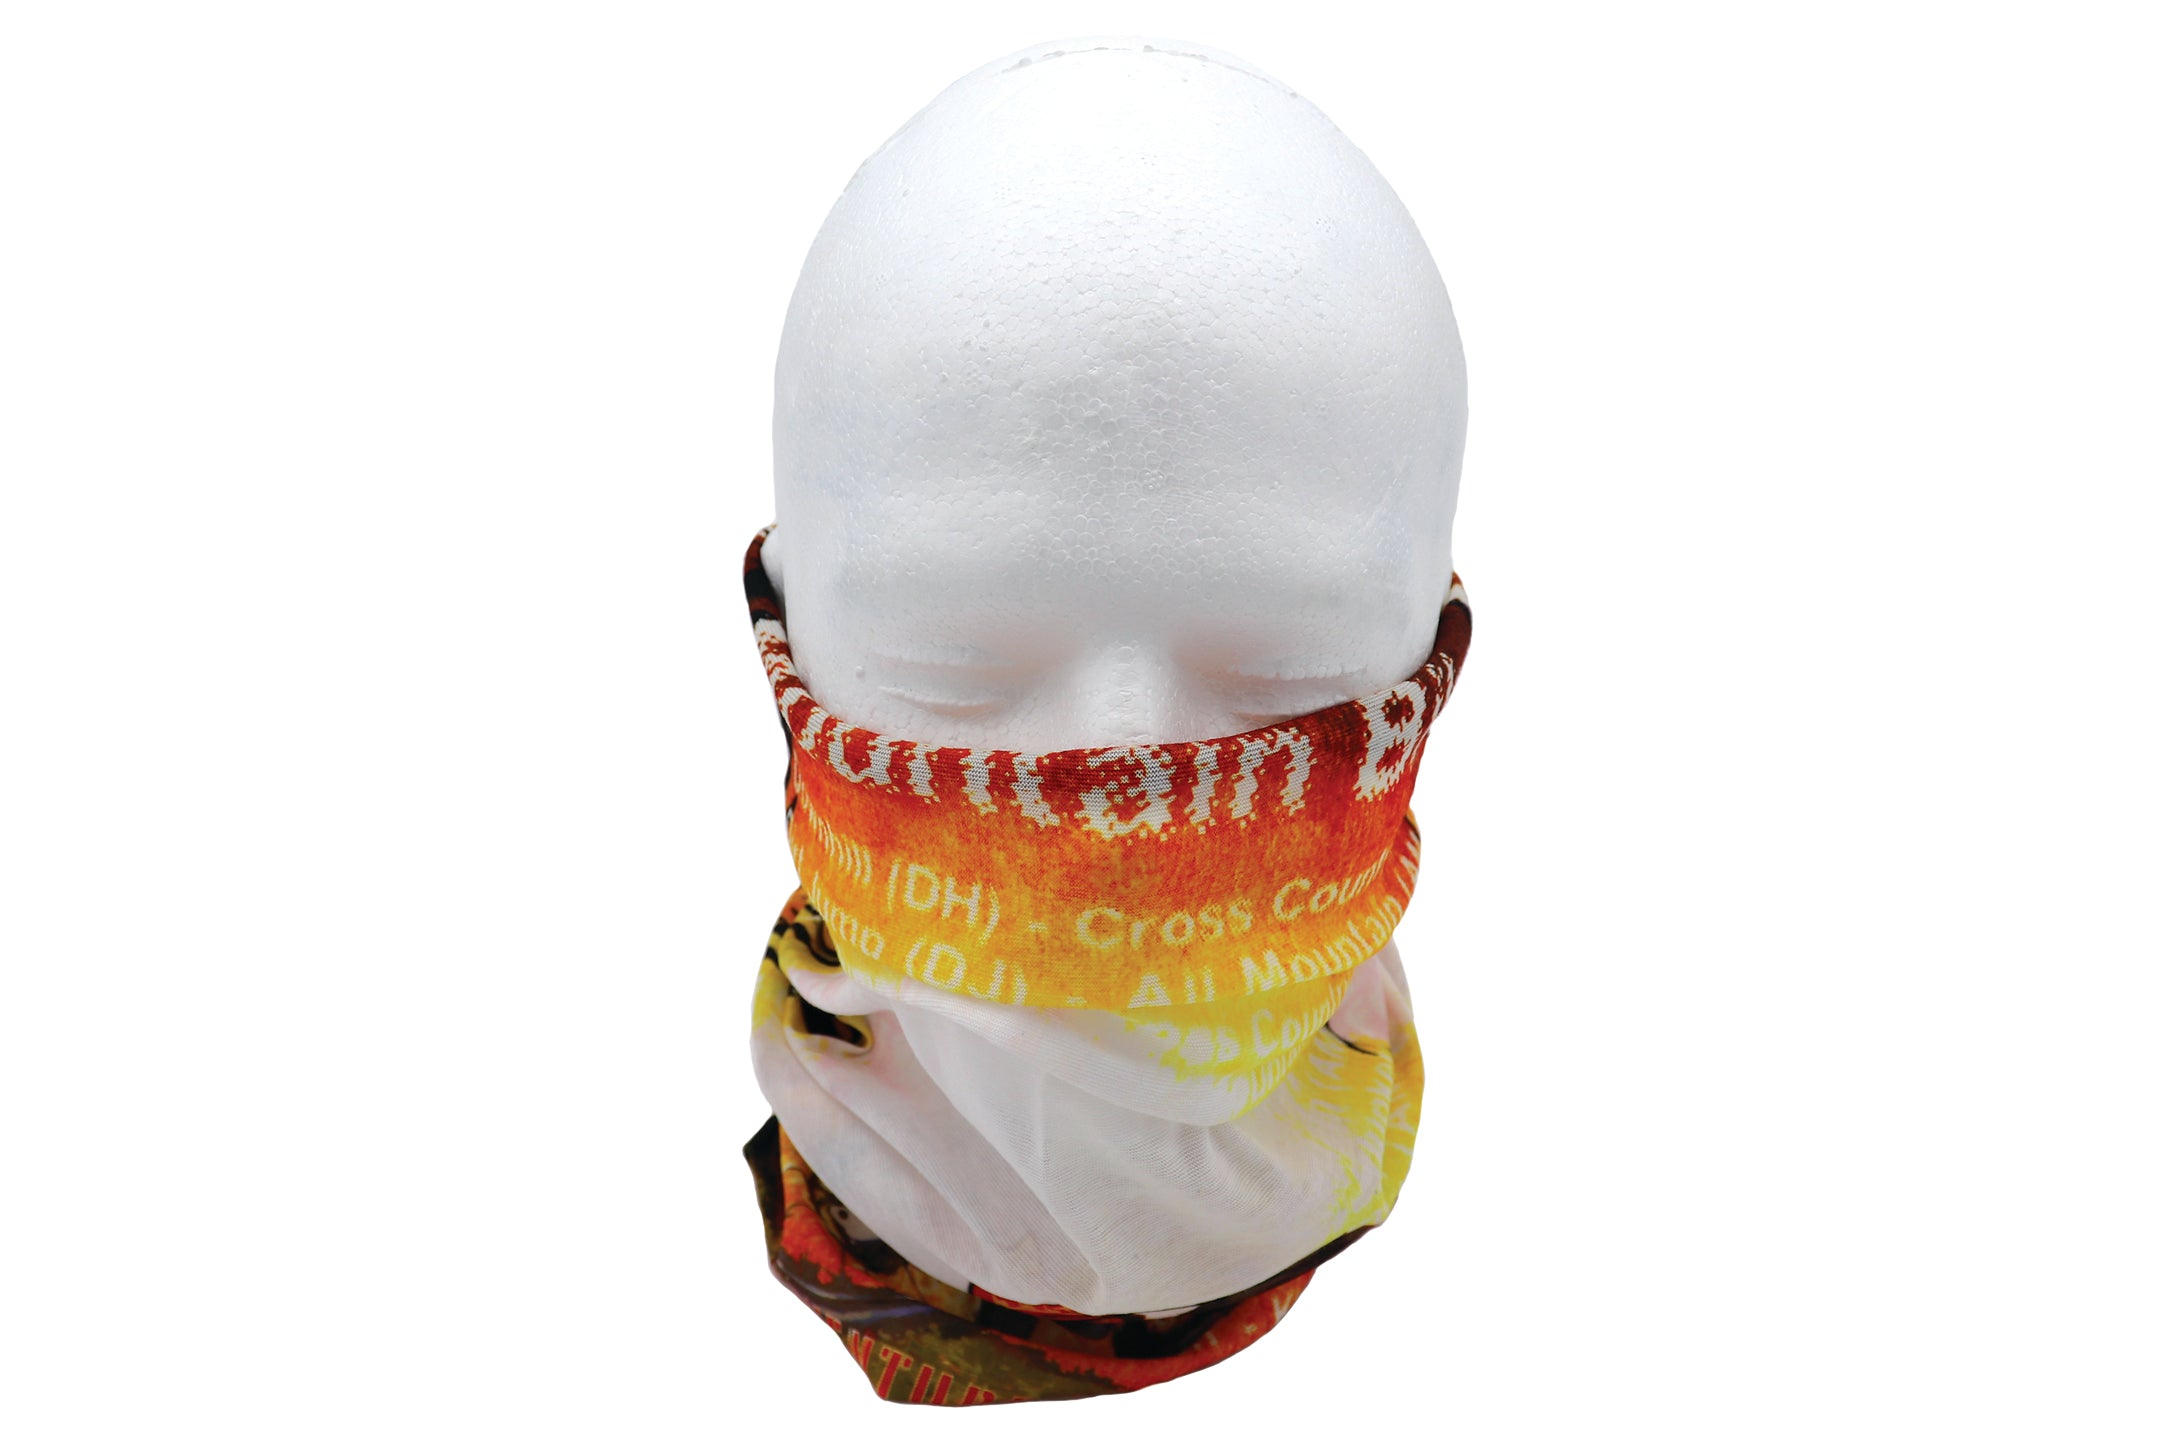 Adult gaiter mountain biker head wear. Adult male biker on a bike. Orange hues of colors with Mountain Biker words. Cloth accessory that easily converts into a headband, wristband, hair-band, neckerchief, beanie, bandana, mouth covering for face mask.